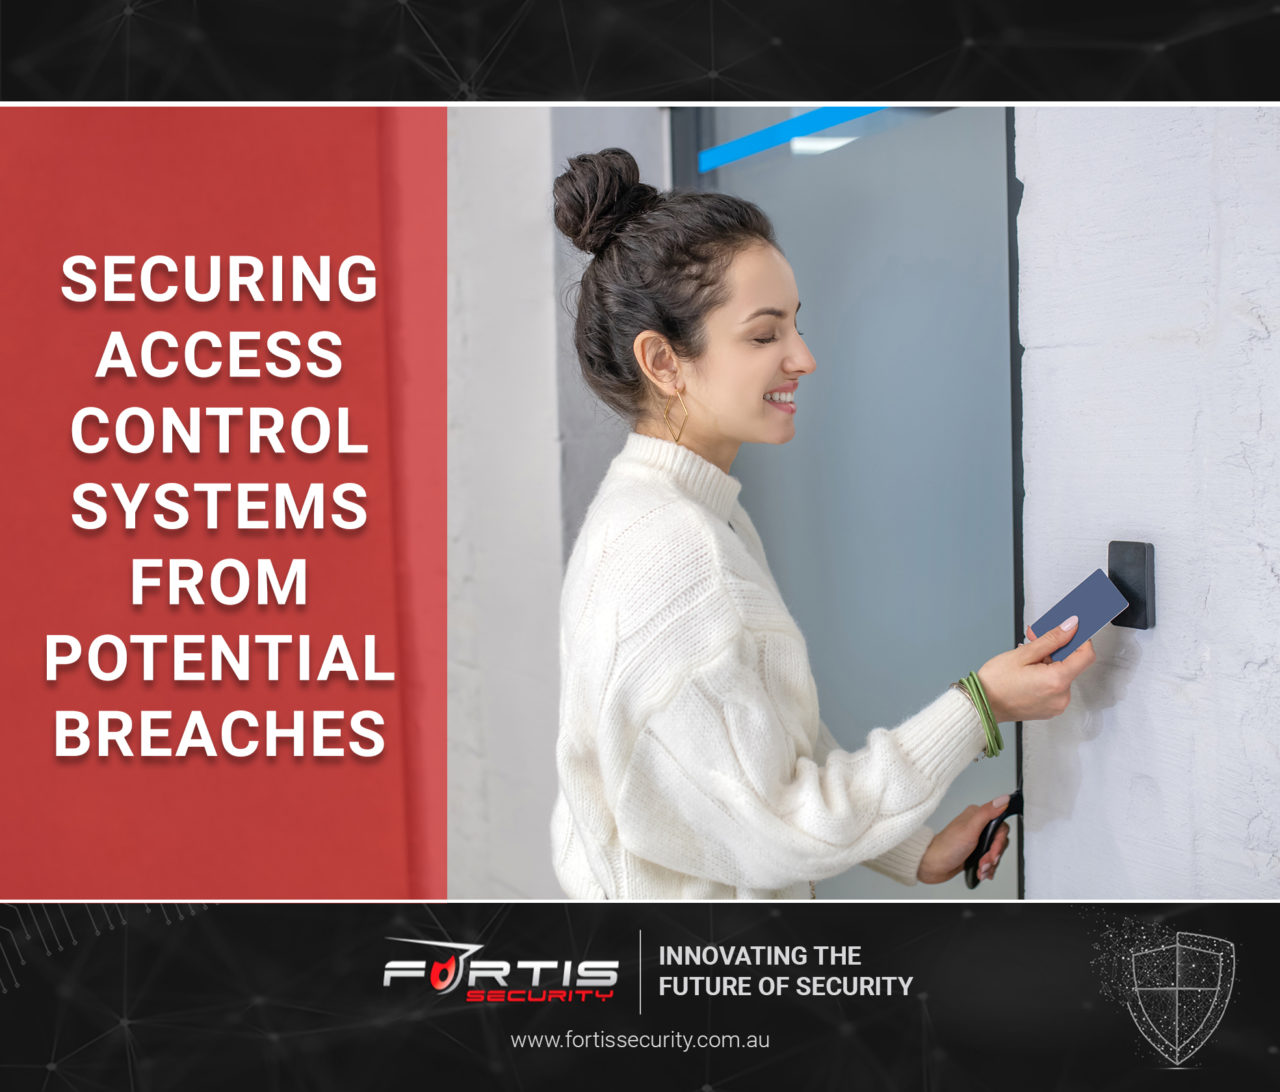 https://www.fortissecurity.com.au/wp-content/uploads/2021/08/Article-18-1280x1092.jpg